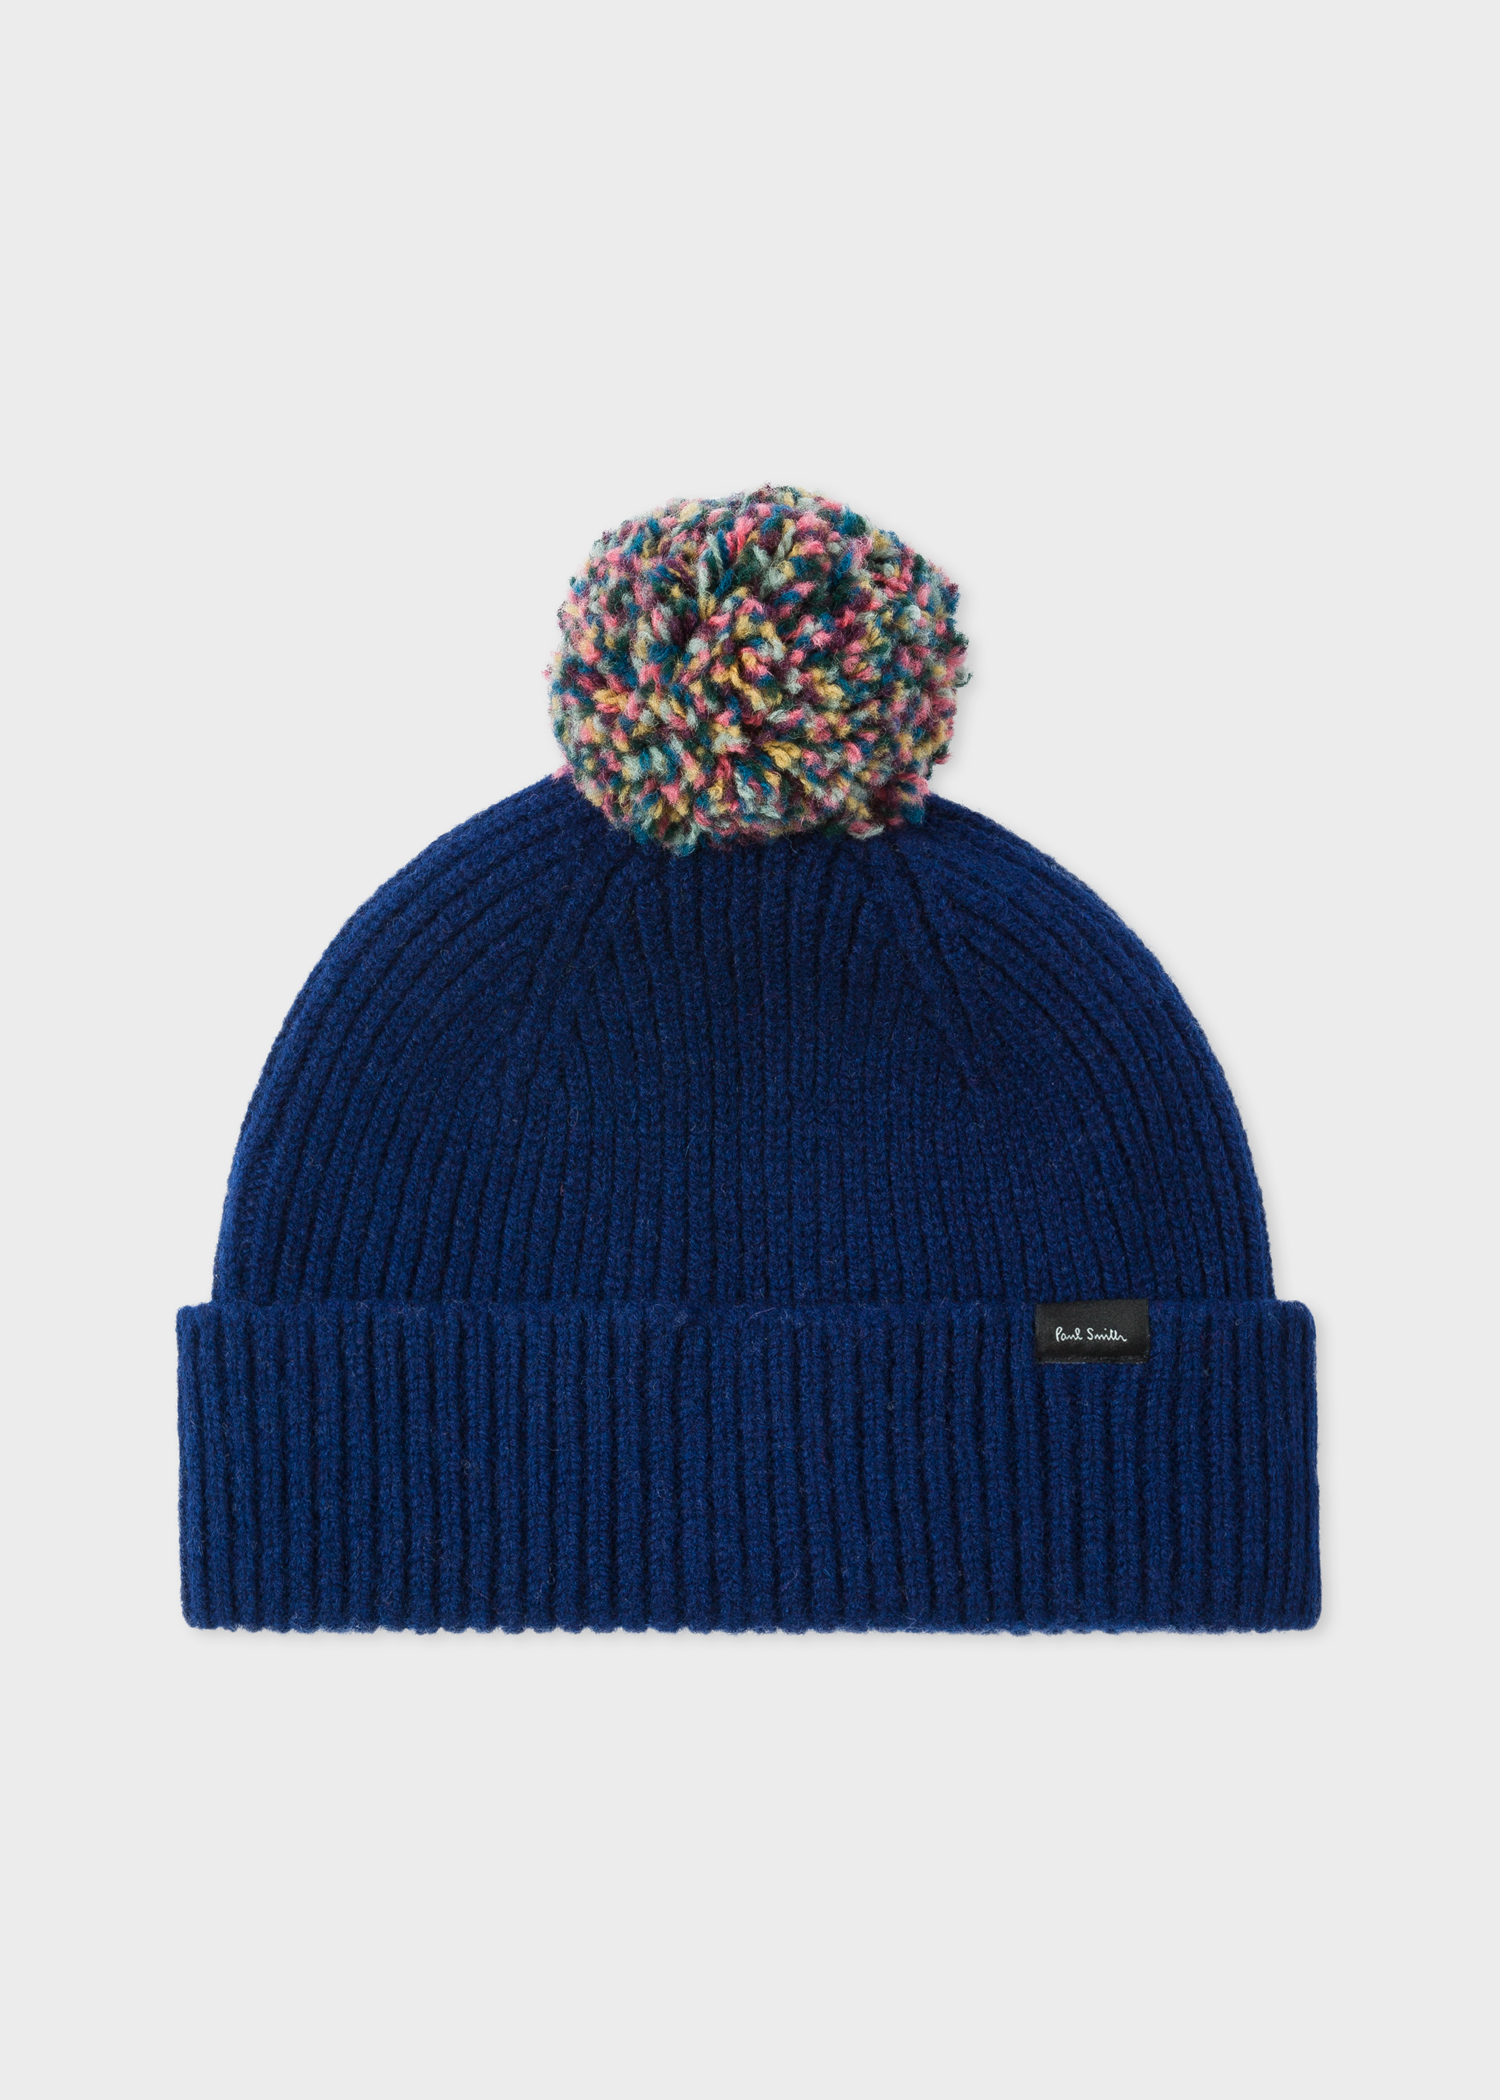 3aab90d6fff Front View - Men s Navy Pom-Pom Wool Beanie Hat Paul Smith